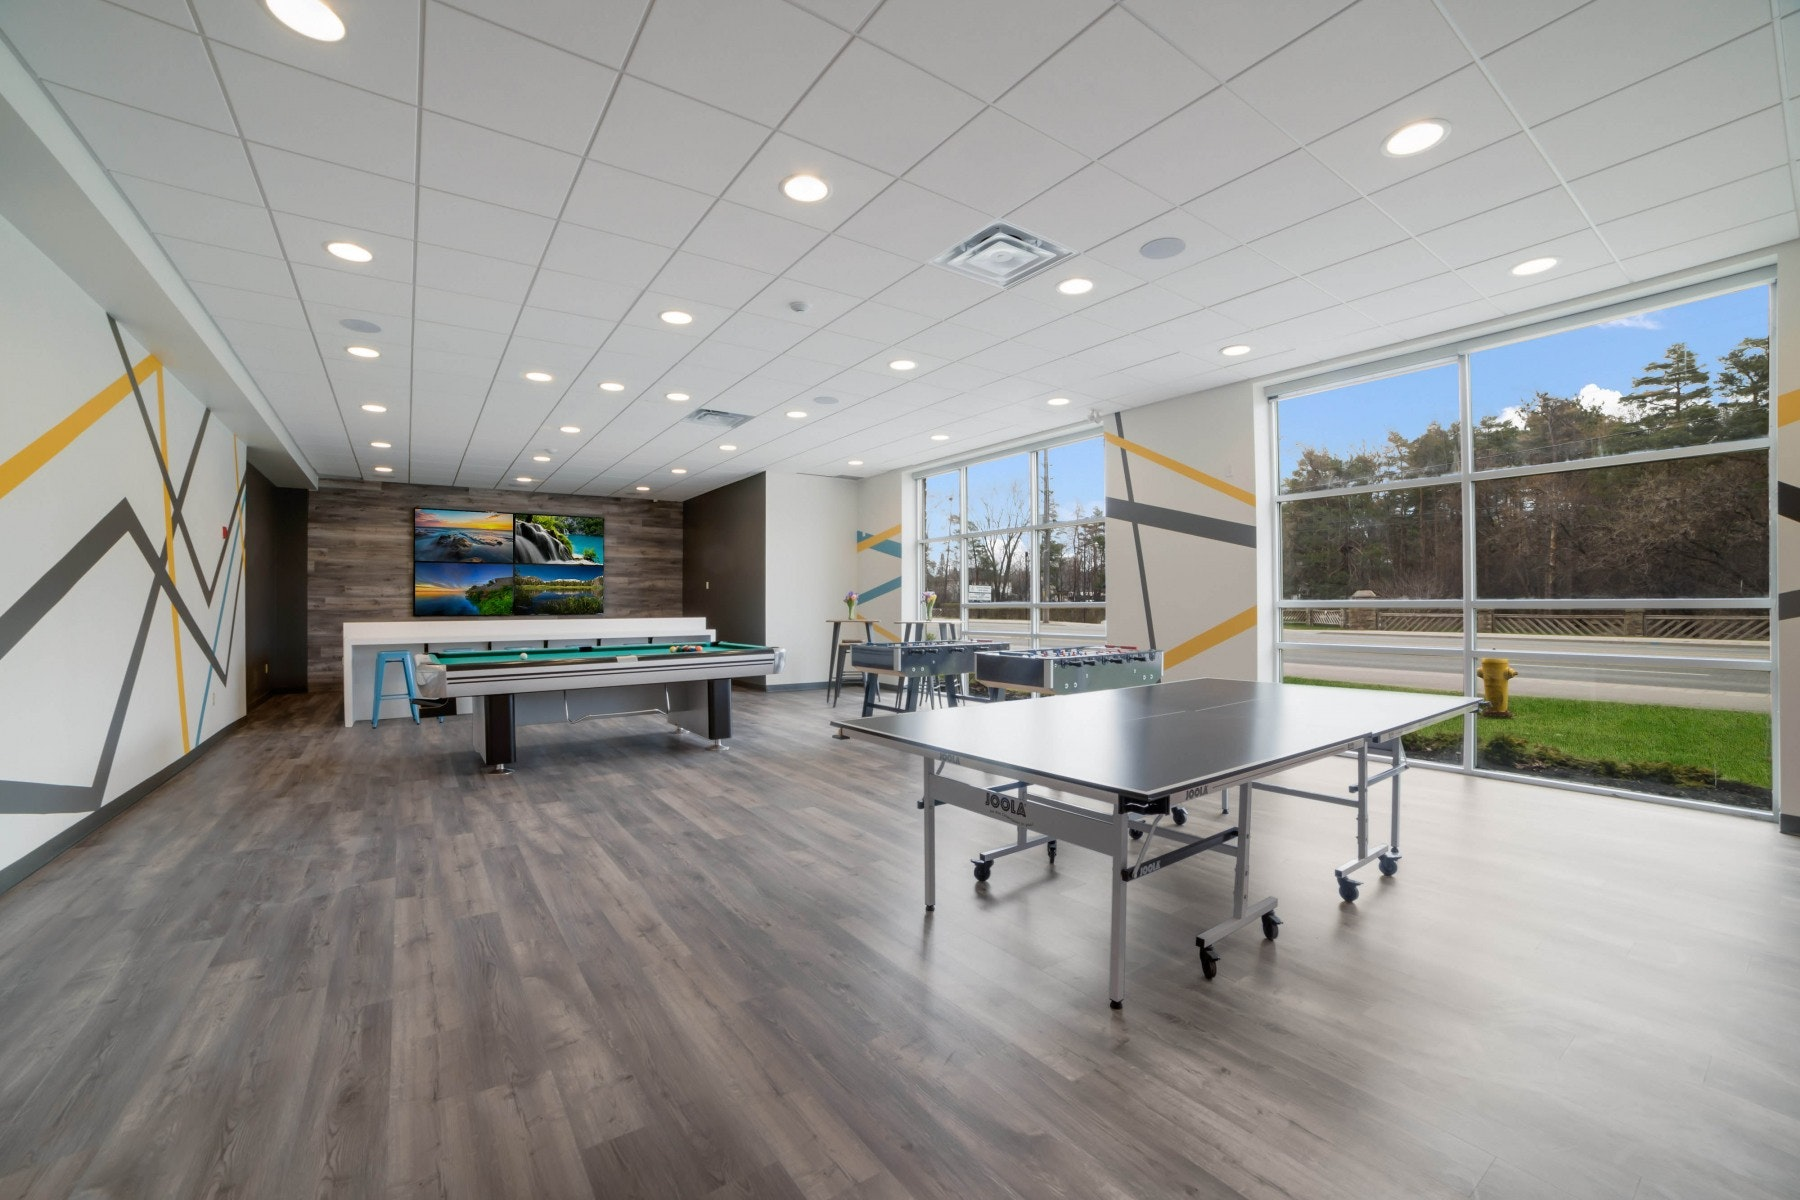 Games room with big screen tv, pool table, ping pong table and arcade games